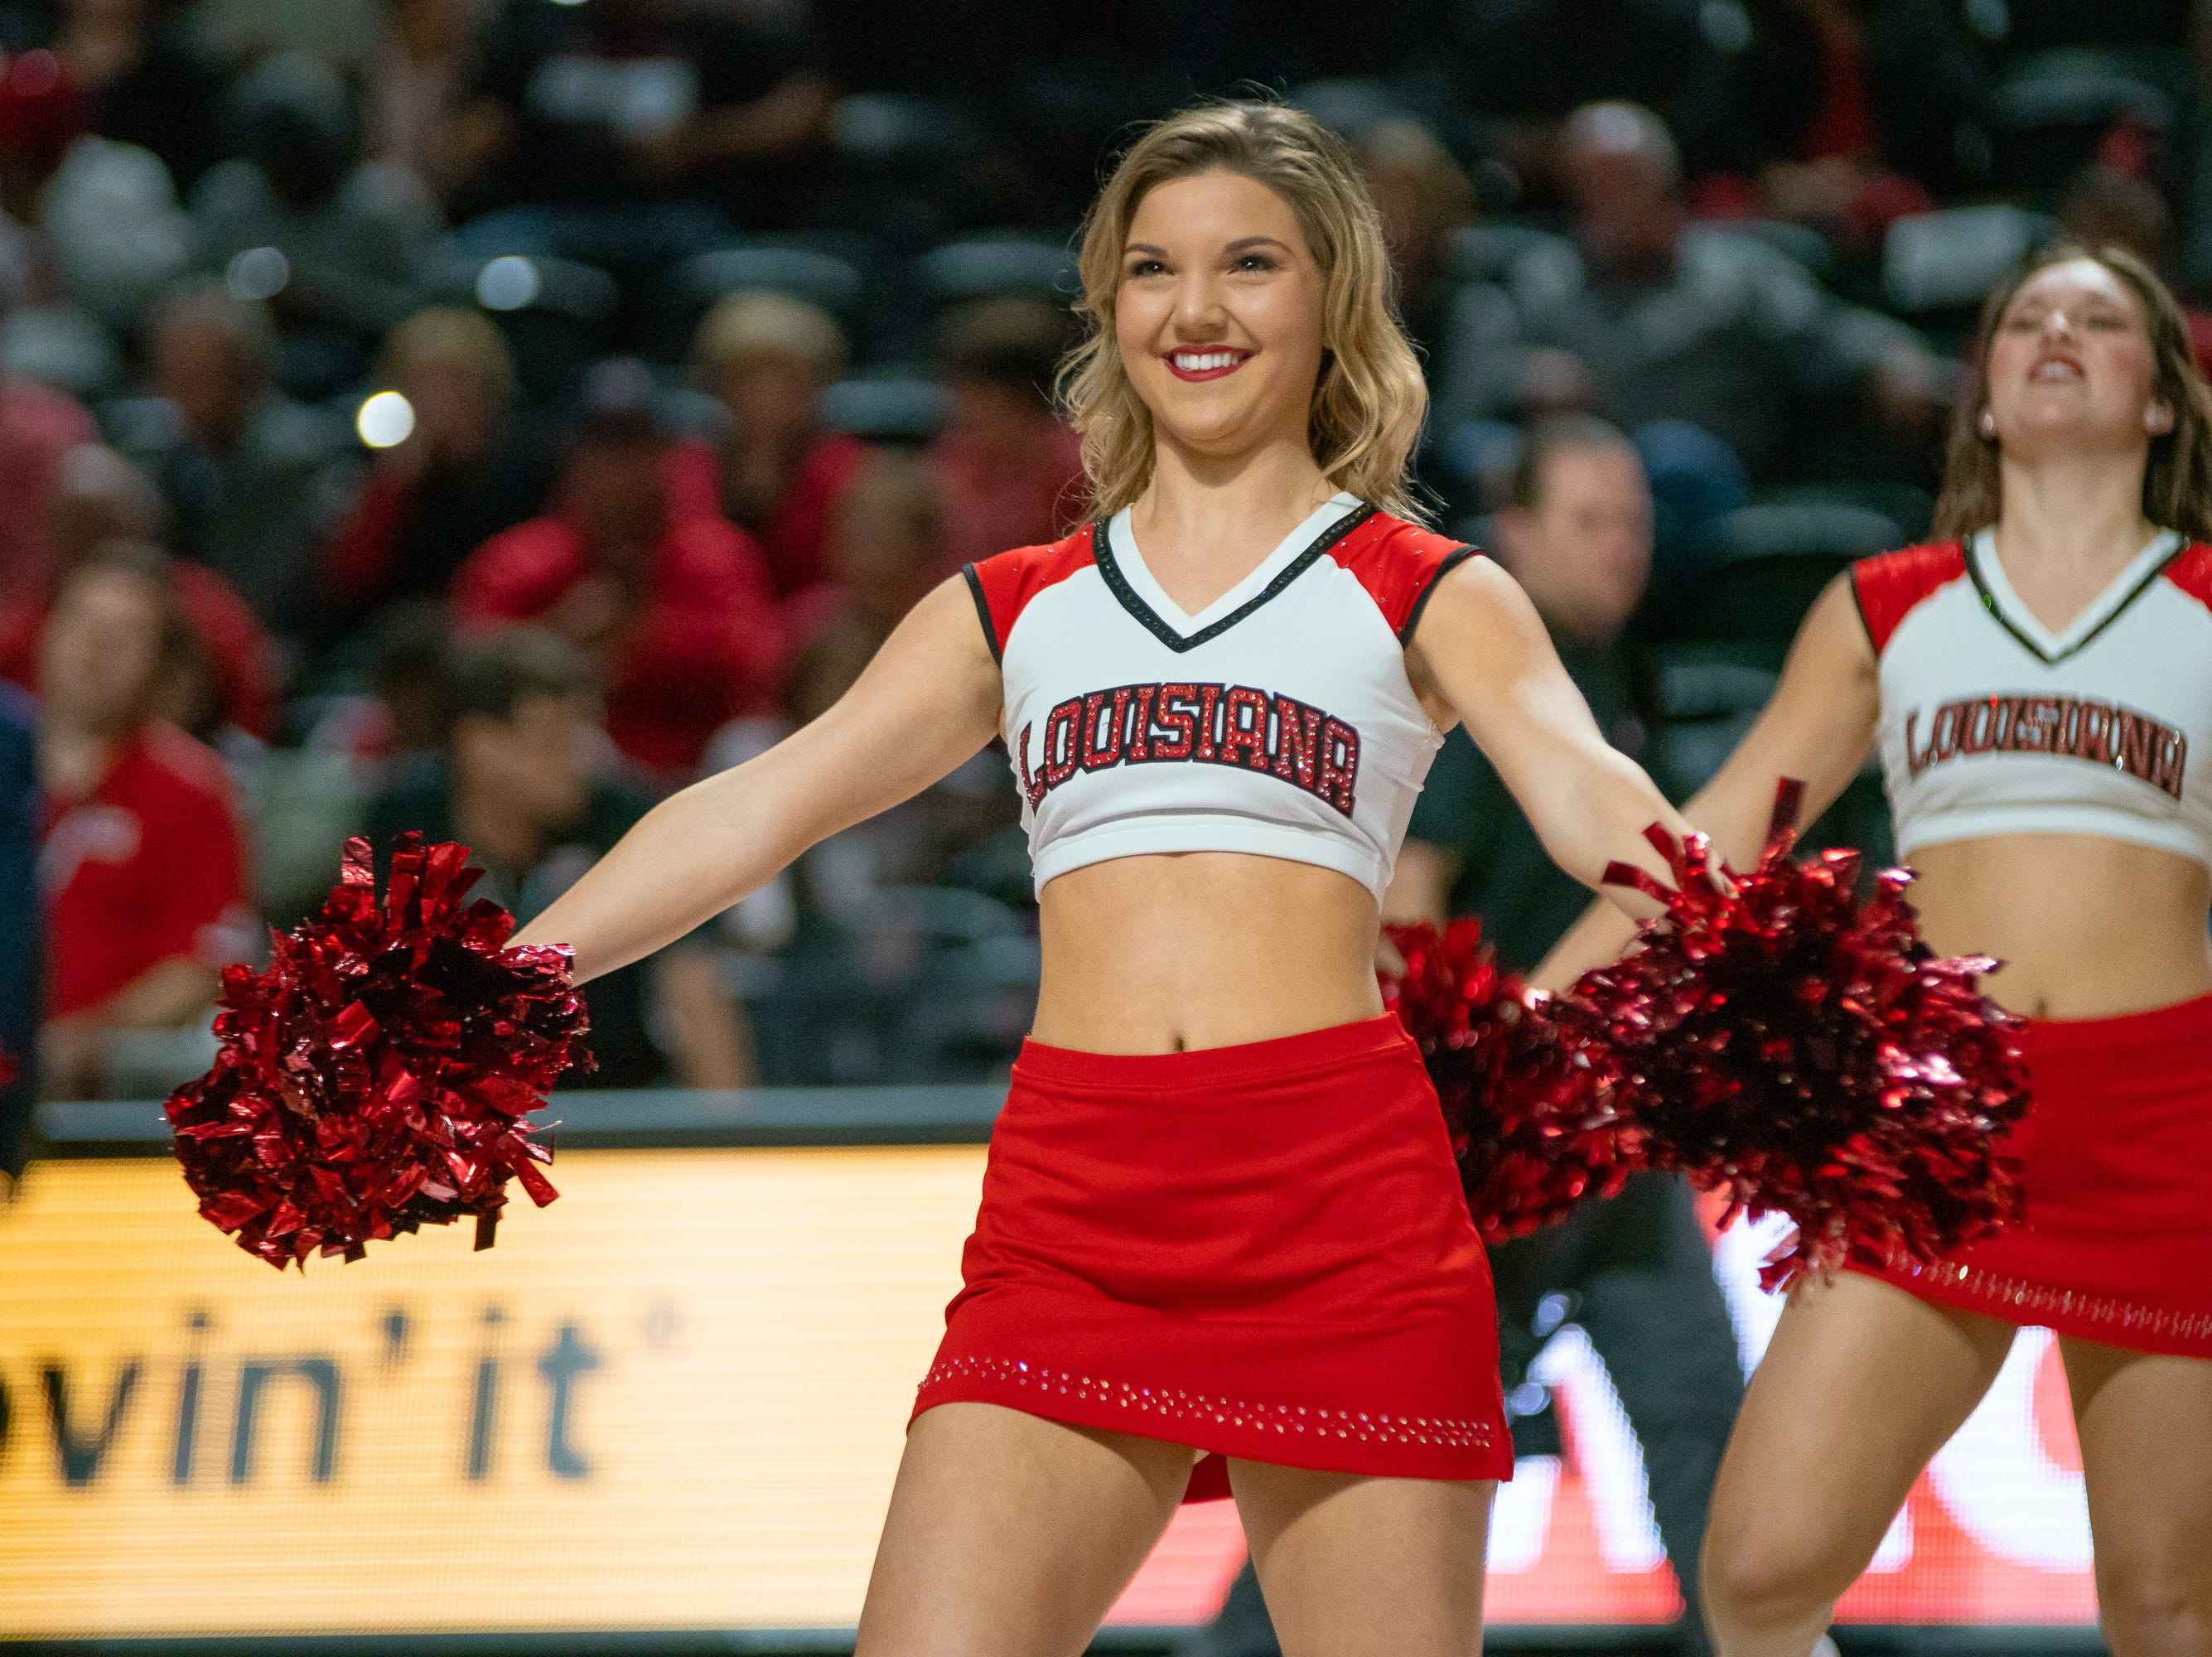 Ragin' Jazz dancer Bailey Landry performs at half-time as the Ragin' Cajuns take on the Troy Trojans at the Cajundome on Jan. 26, 2019.